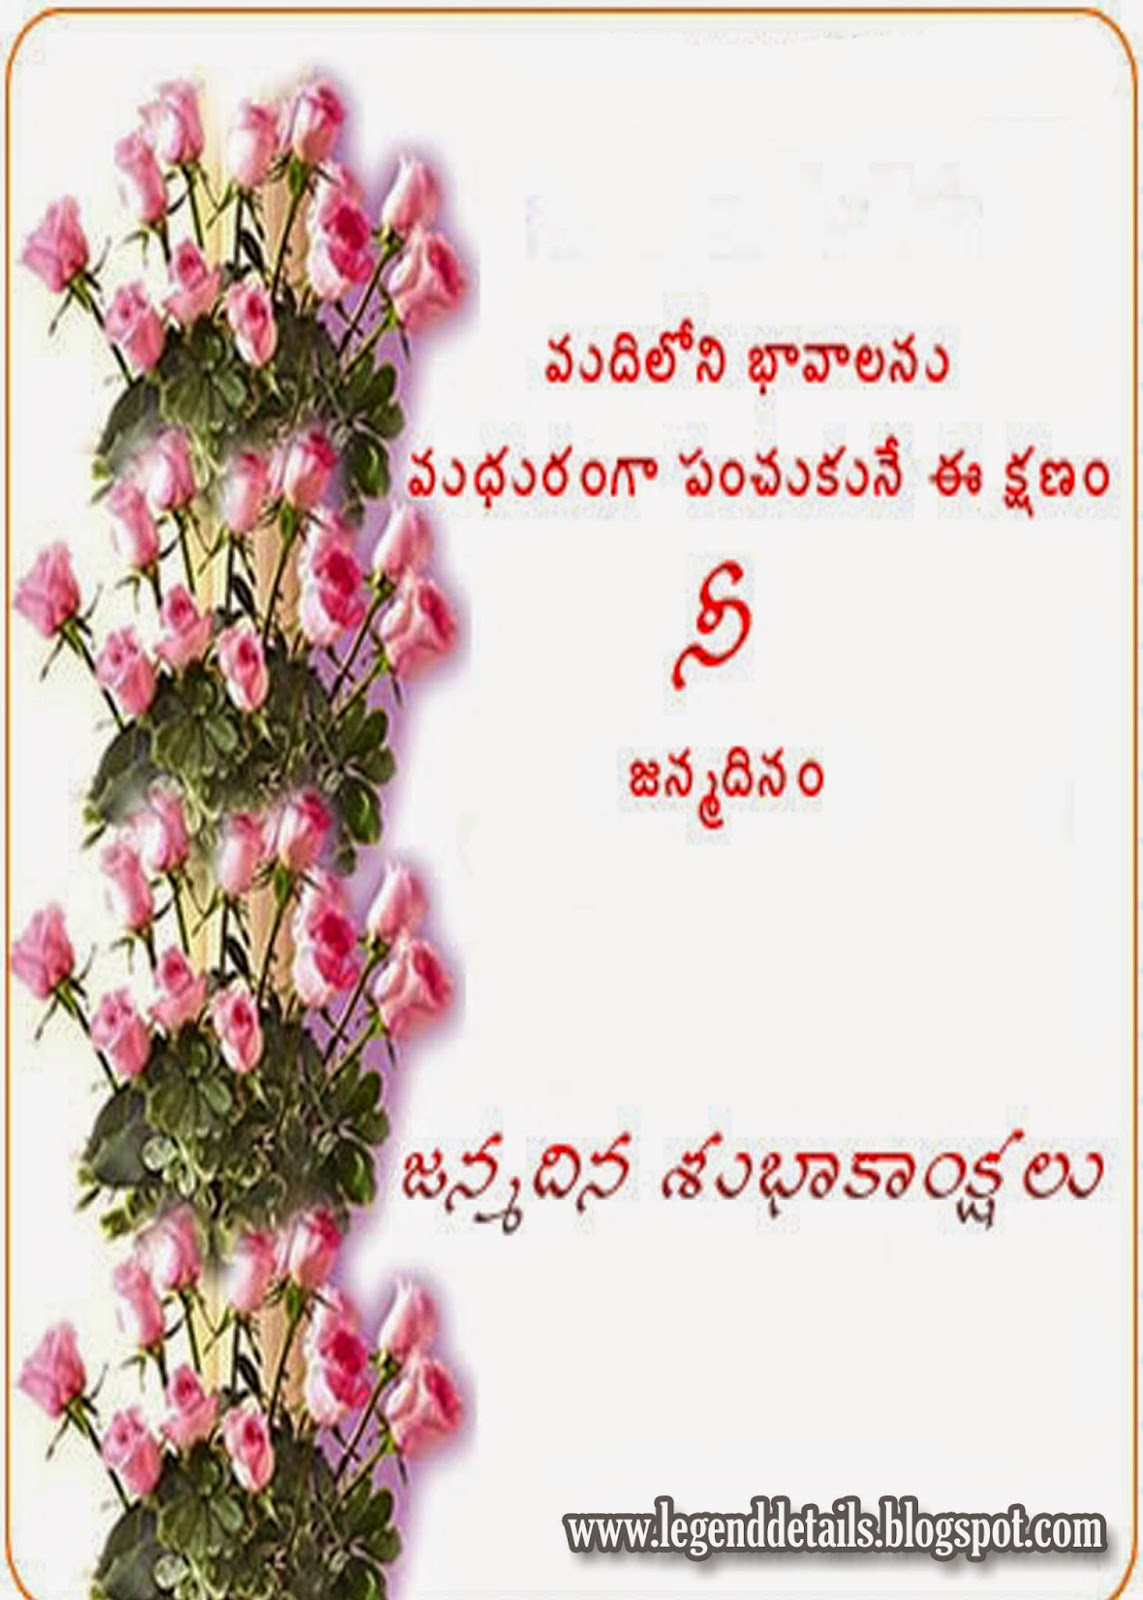 Birth Day Greetings In Telugu Free Subhakankshalu With